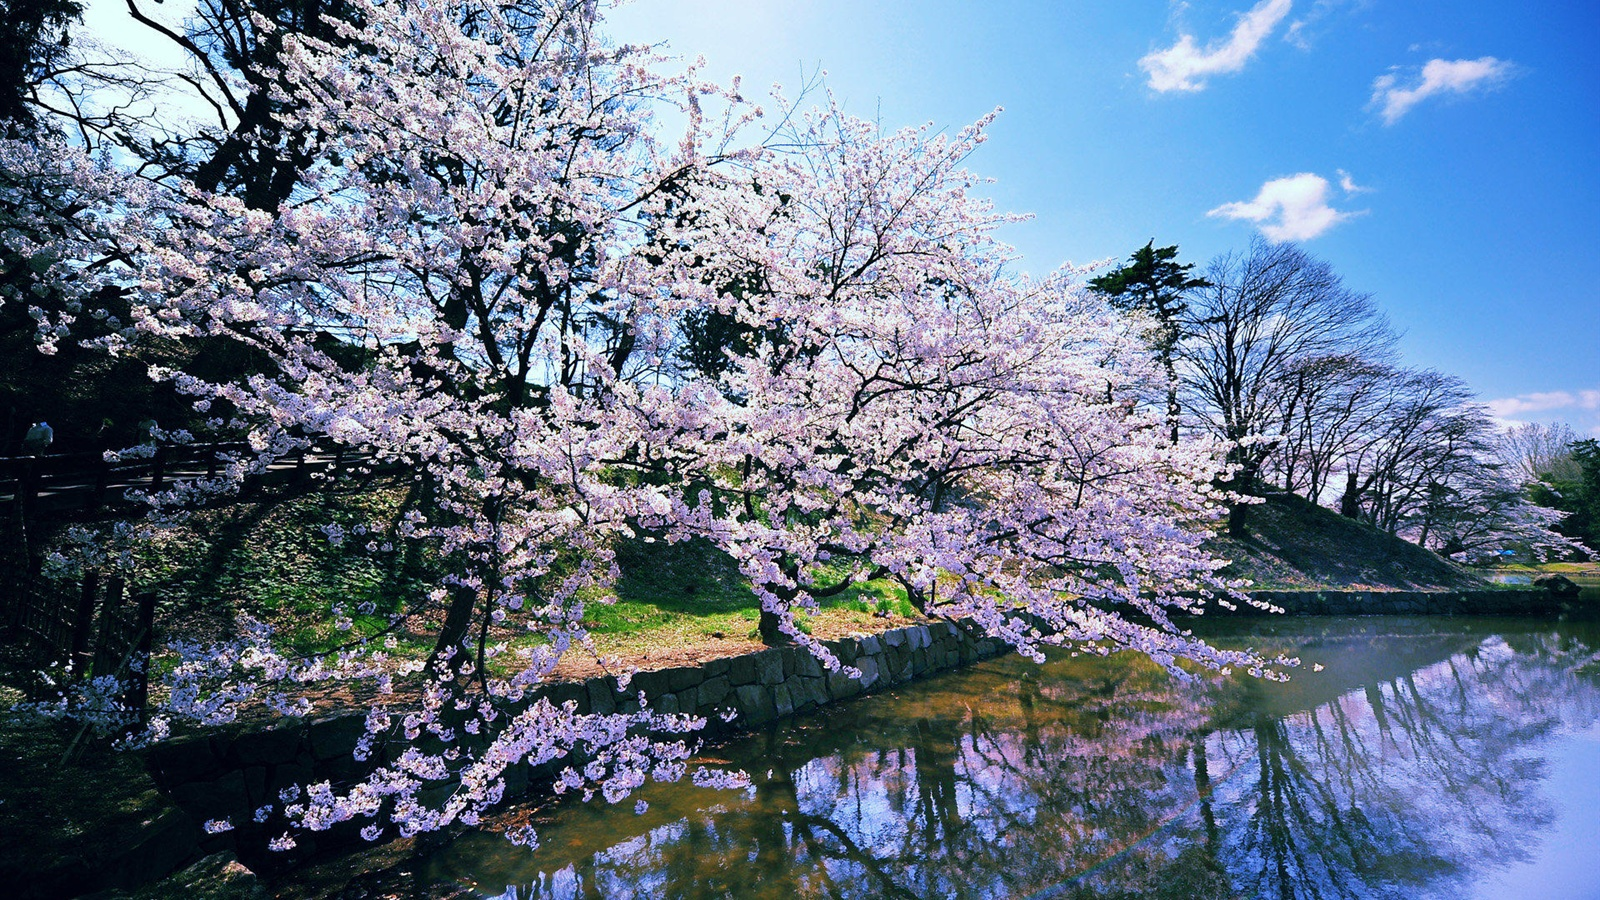 Japanese cherry blossoms wallpaper - 1600x900